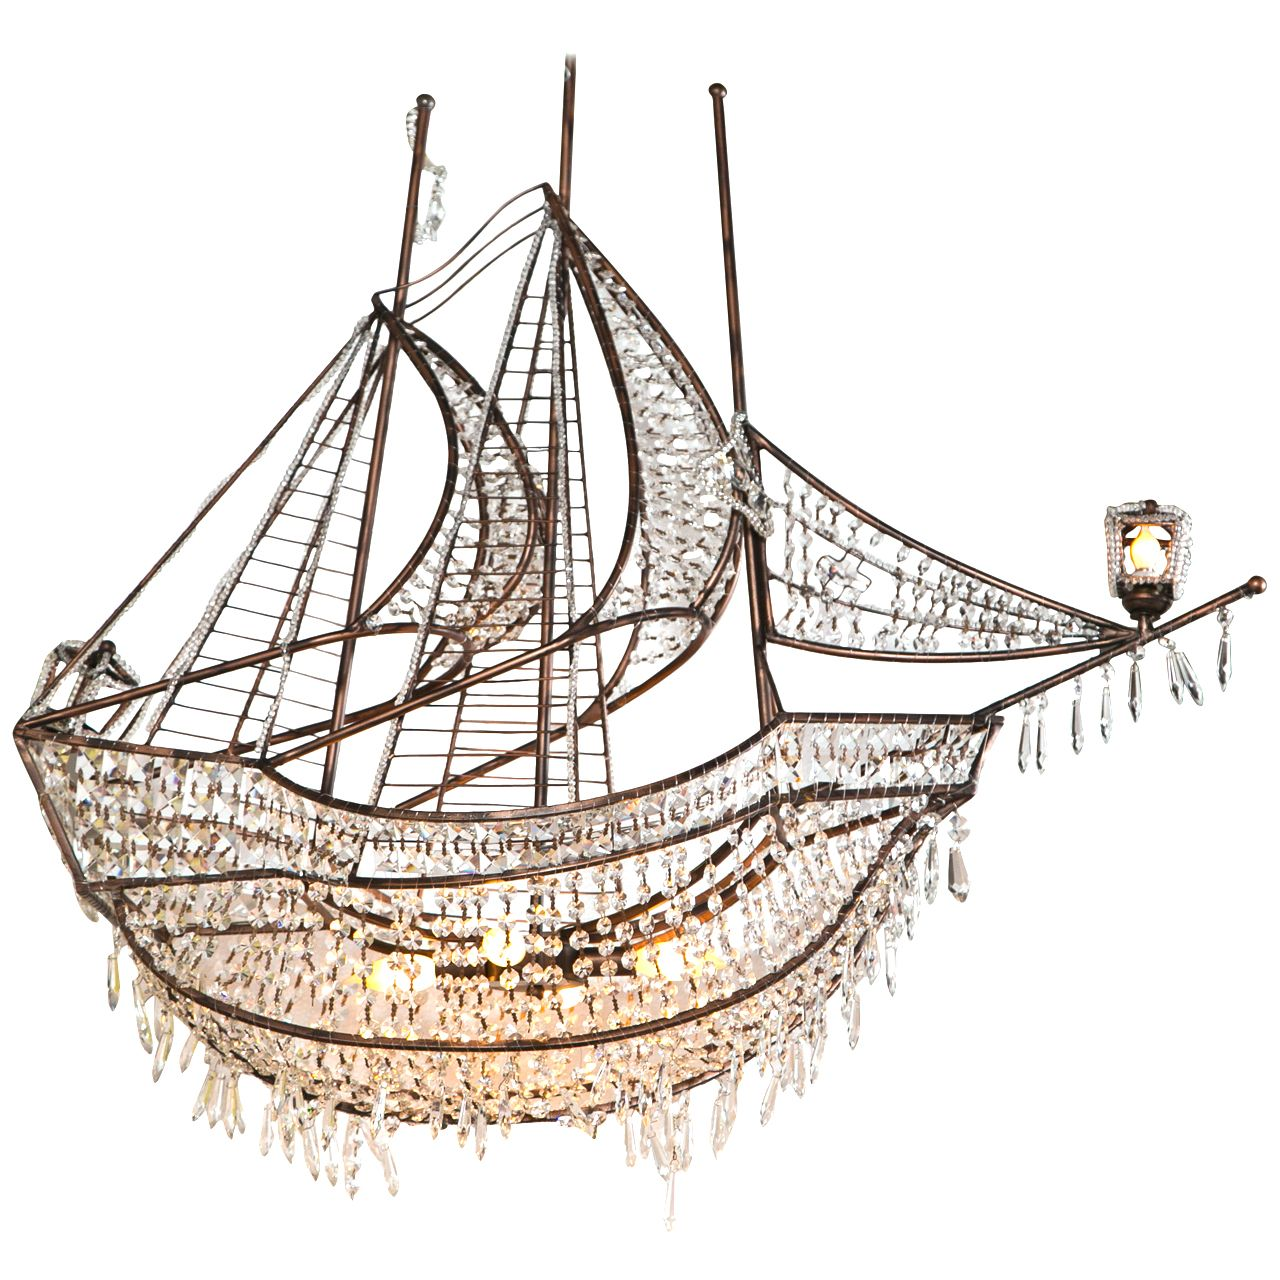 Decorative iron and crystal ship chandelier chandeliers iron and decorative iron and crystal ship chandelier 1stdibs mozeypictures Images